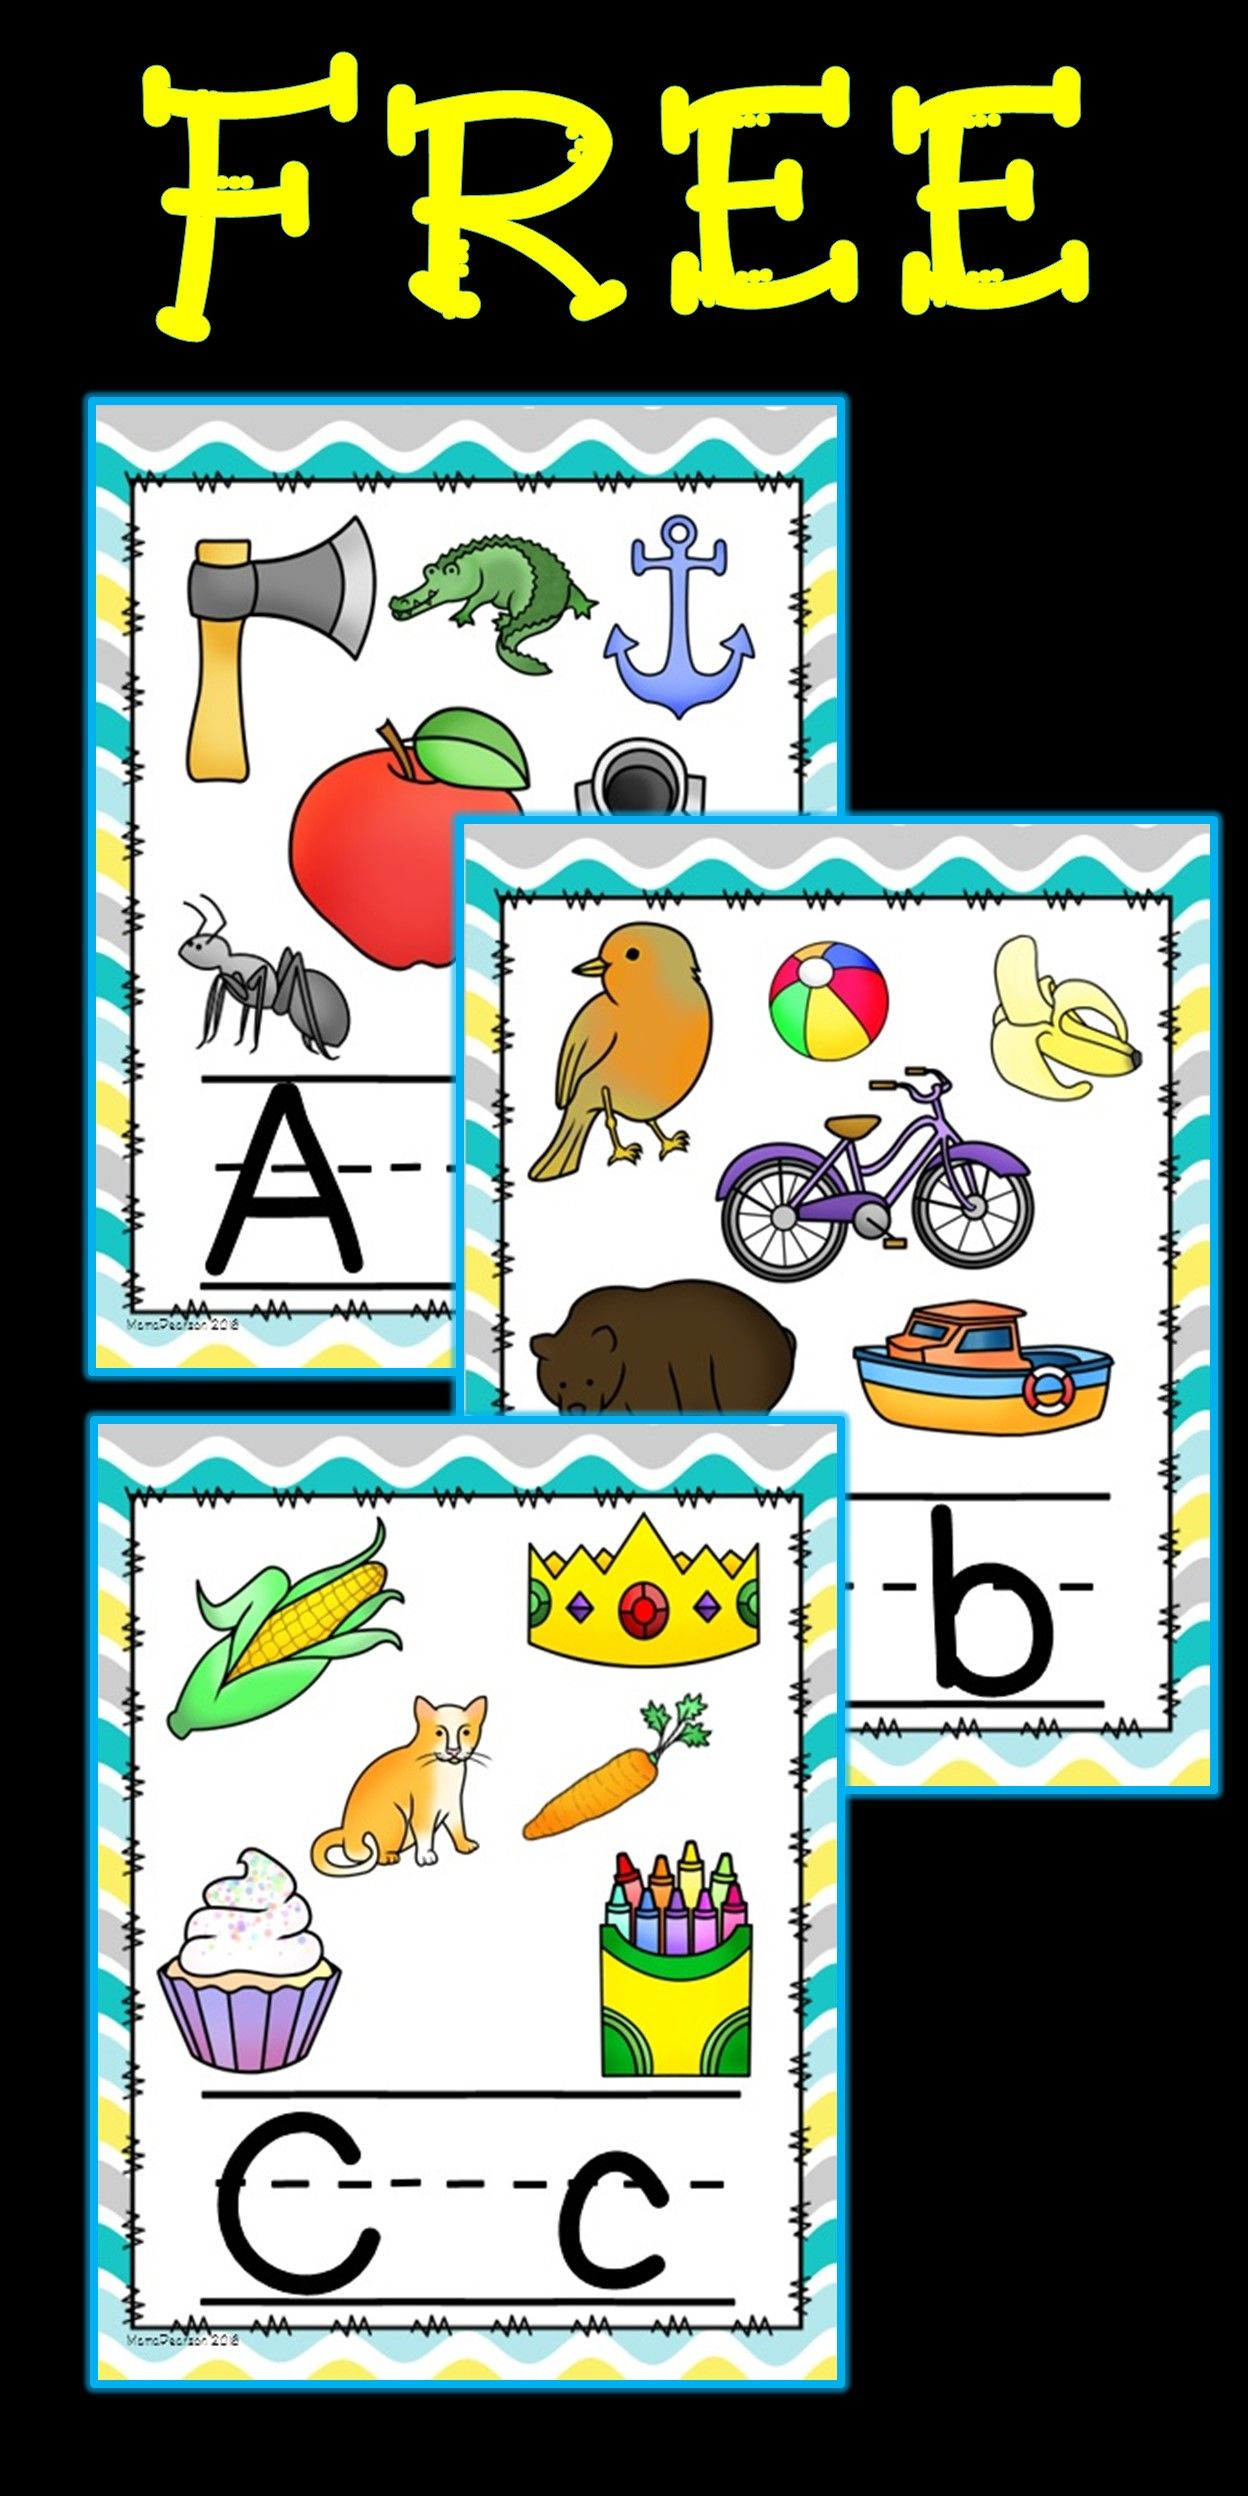 World History Worksheets High School Free Full Set Of Alphabet Posters With Upper And Lower Case  Good Vs Well Worksheet with Alphabet Cursive Worksheets Excel Full Set Of Alphabet Posters With Upper And Lower Case Letters Each Simple Subject And Simple Predicate Worksheets With Answers